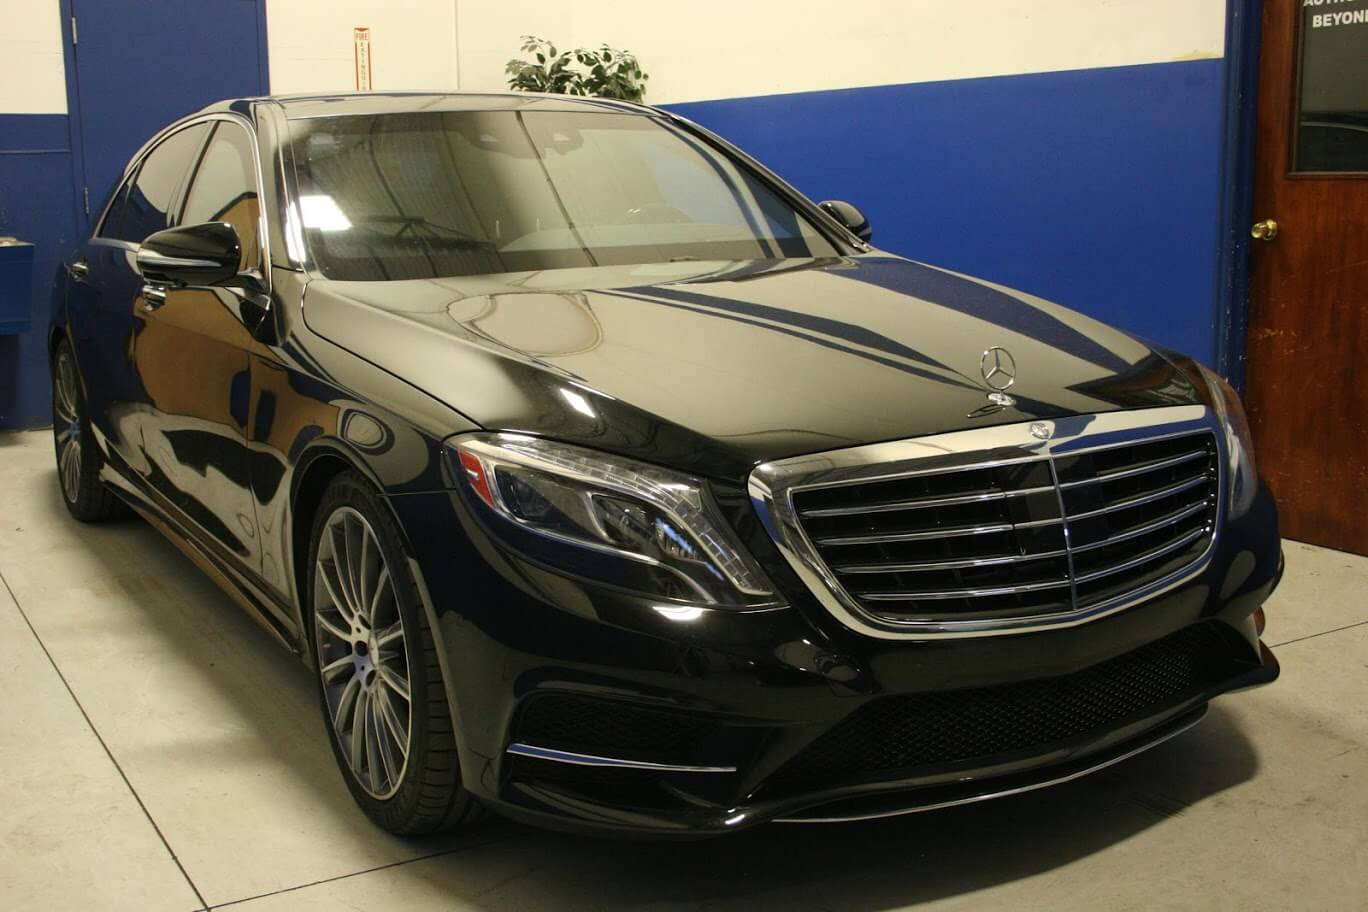 Armored Bulletproof Mercedes Maybach S600 For Sale - Armormax